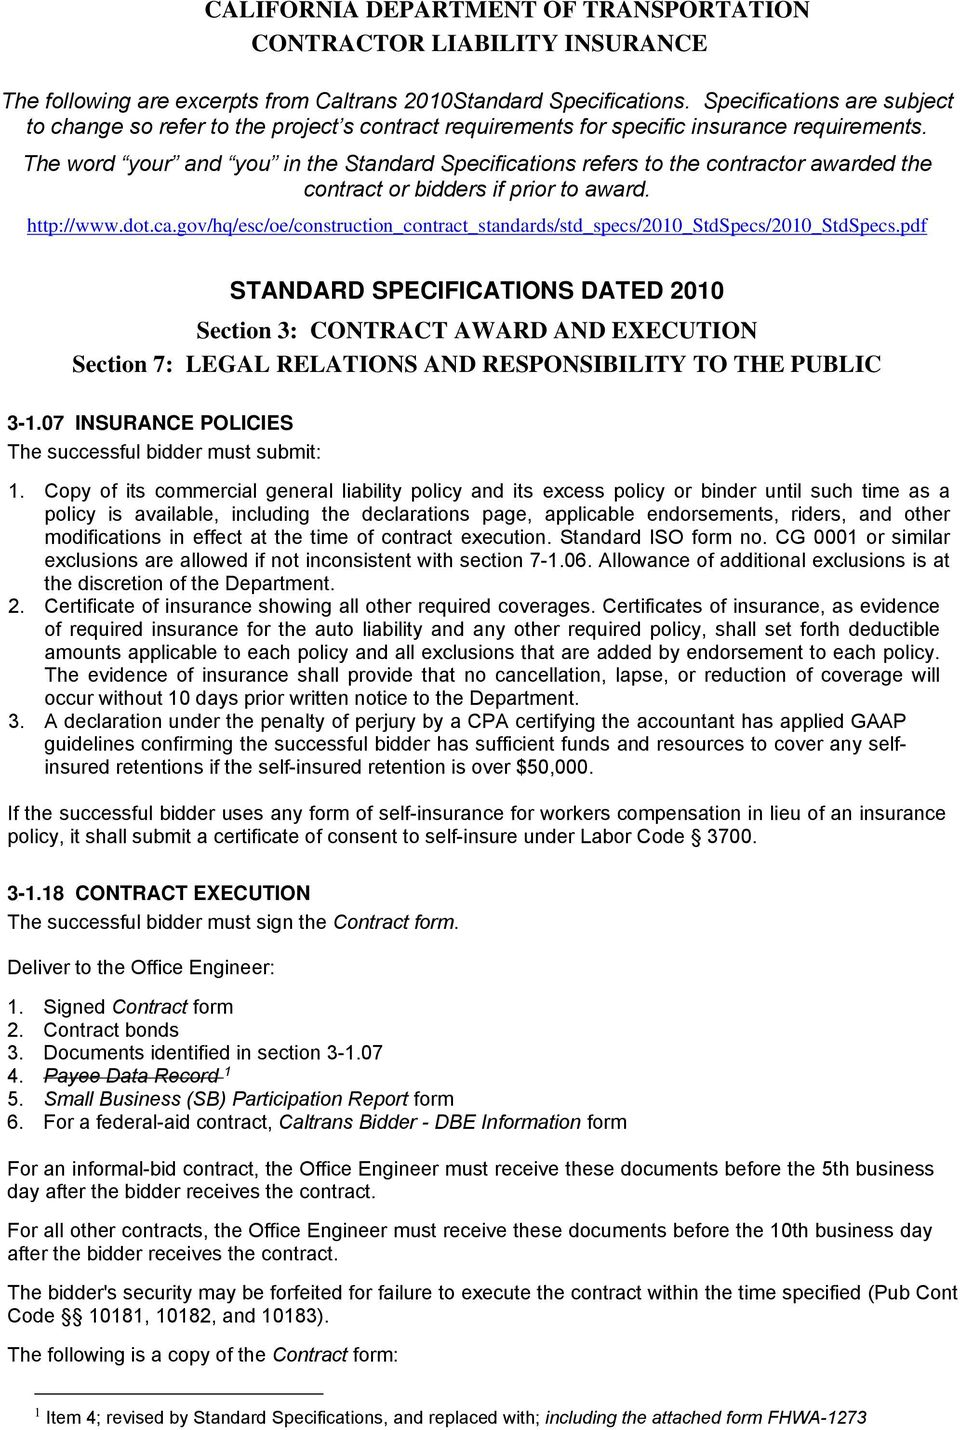 The word your and you in the Standard Specifications refers to the contractor awarded the contract or bidders if prior to award. http://www.dot.ca.gov/hq/esc/oe/construction_contract_standards/std_specs/2010_stdspecs/2010_stdspecs.